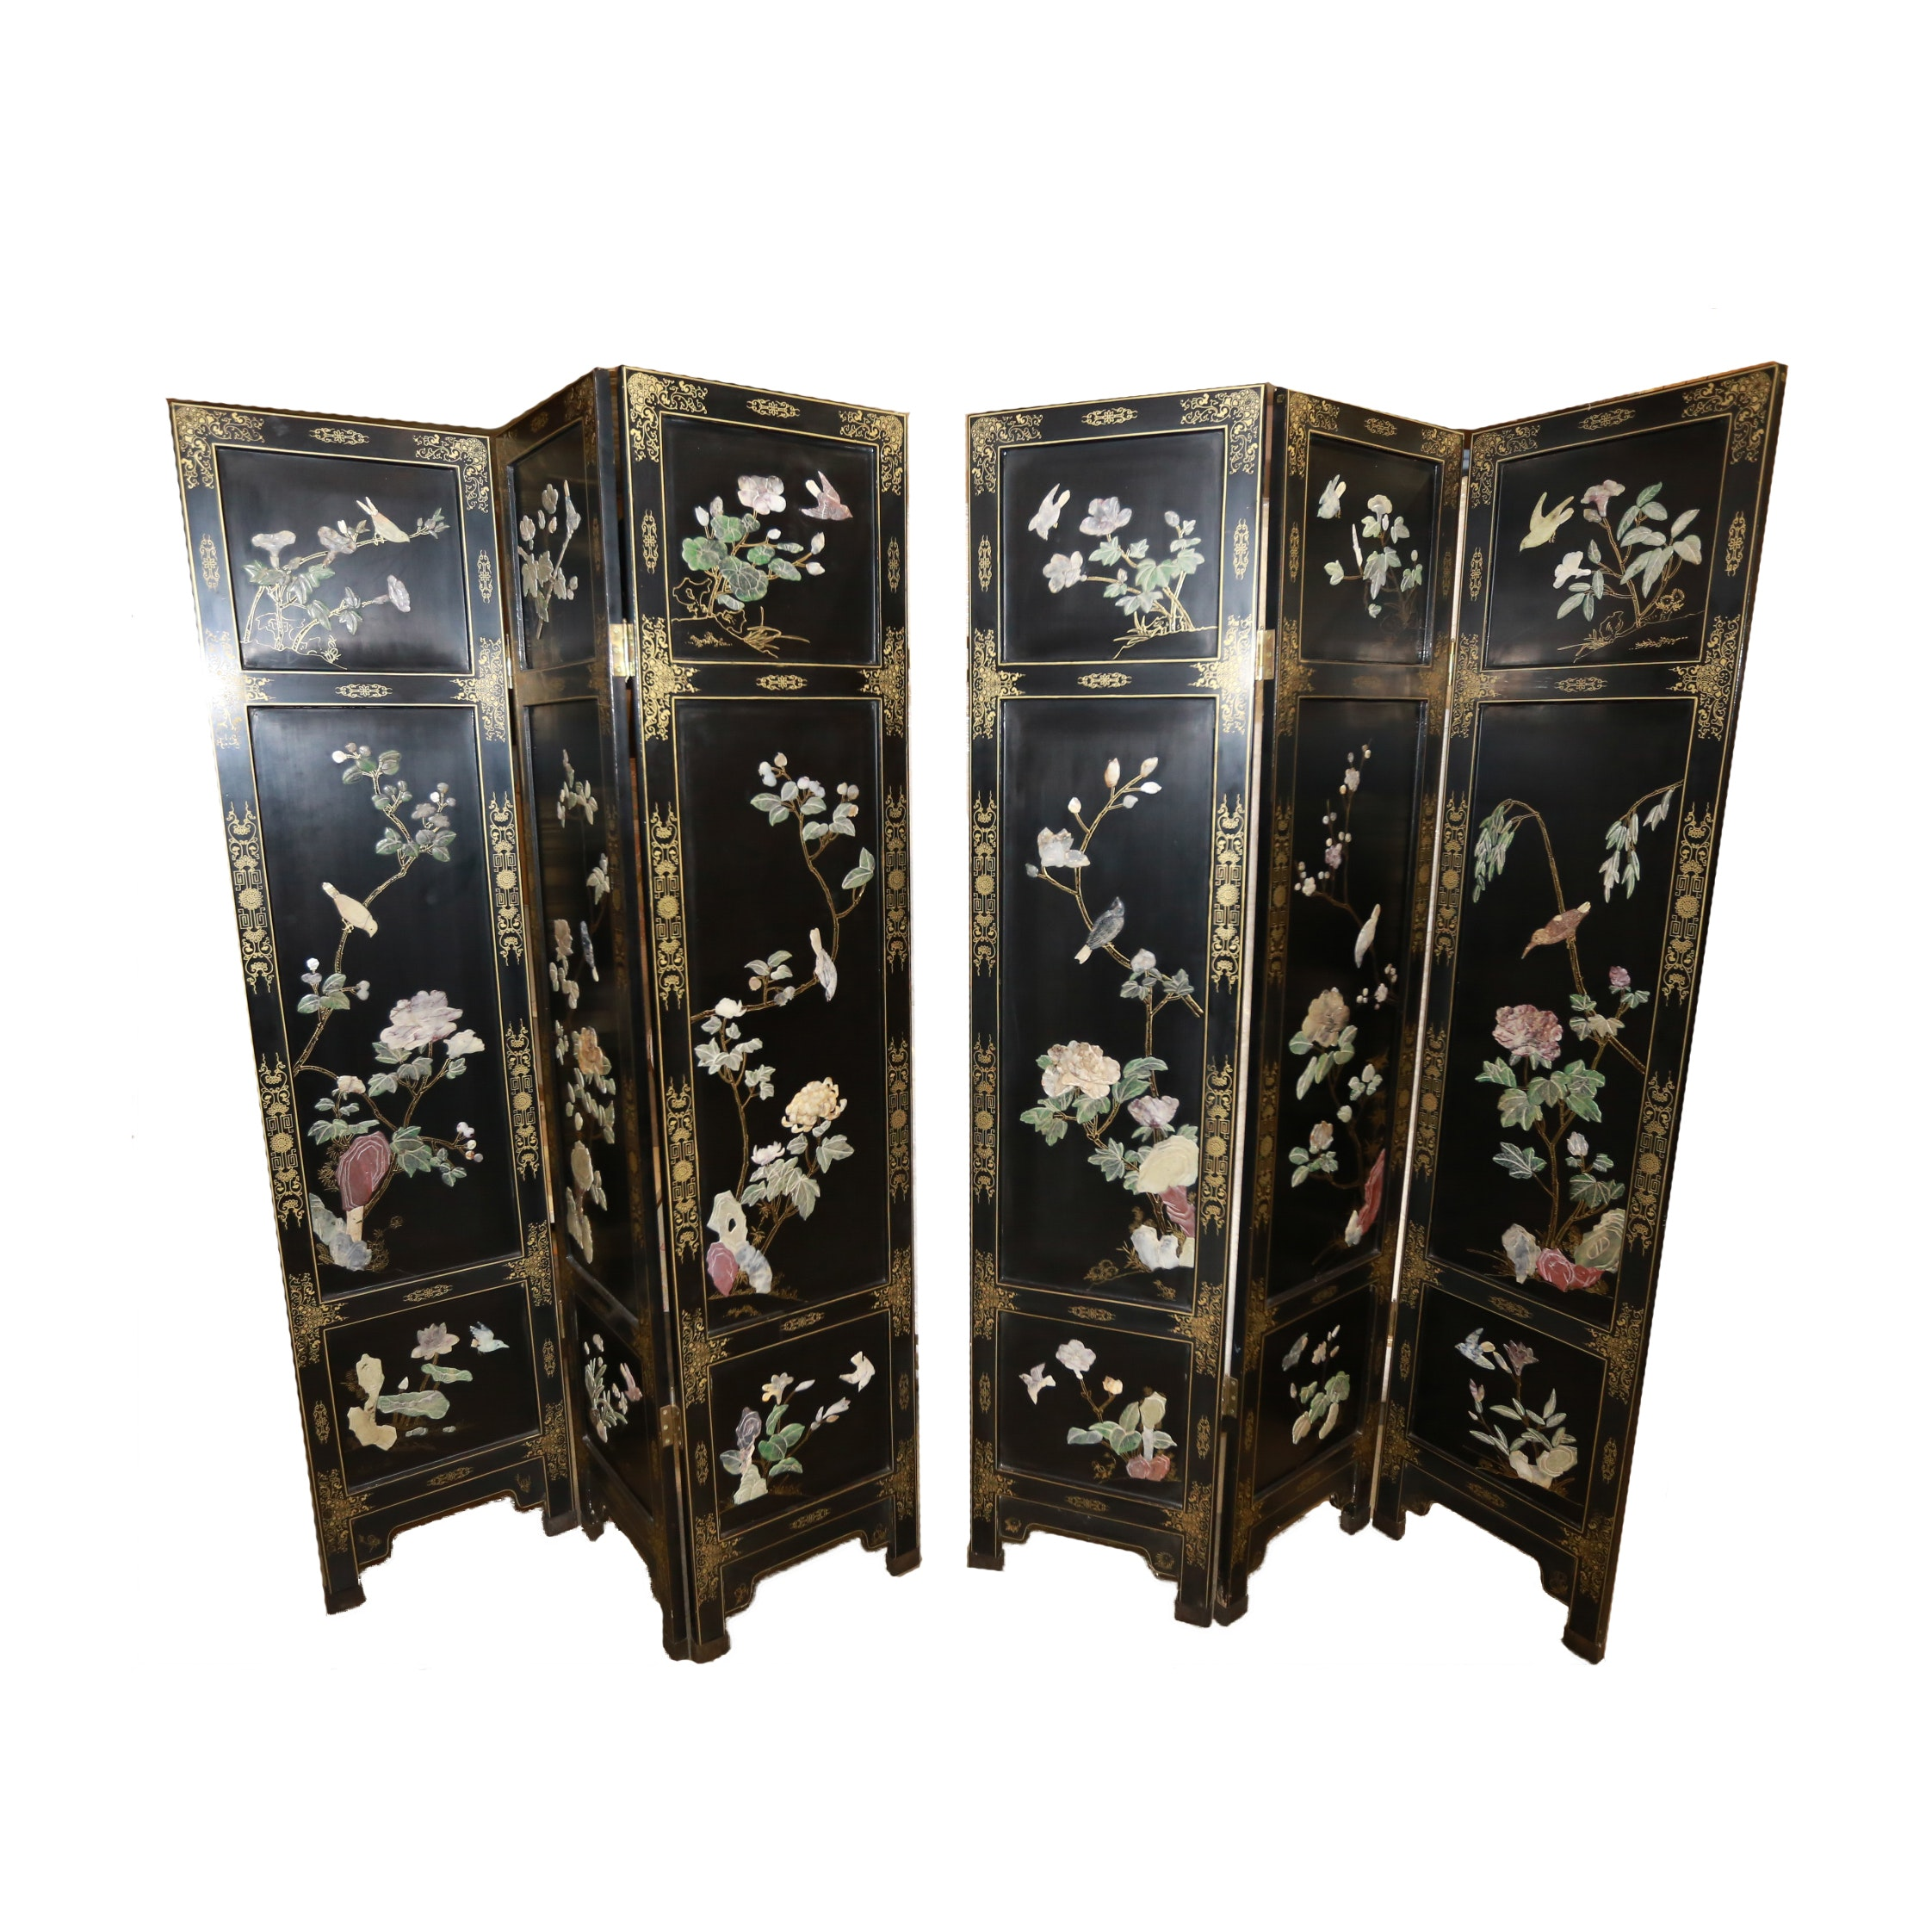 Pair of Painted Wooden Chinese Folding Screens